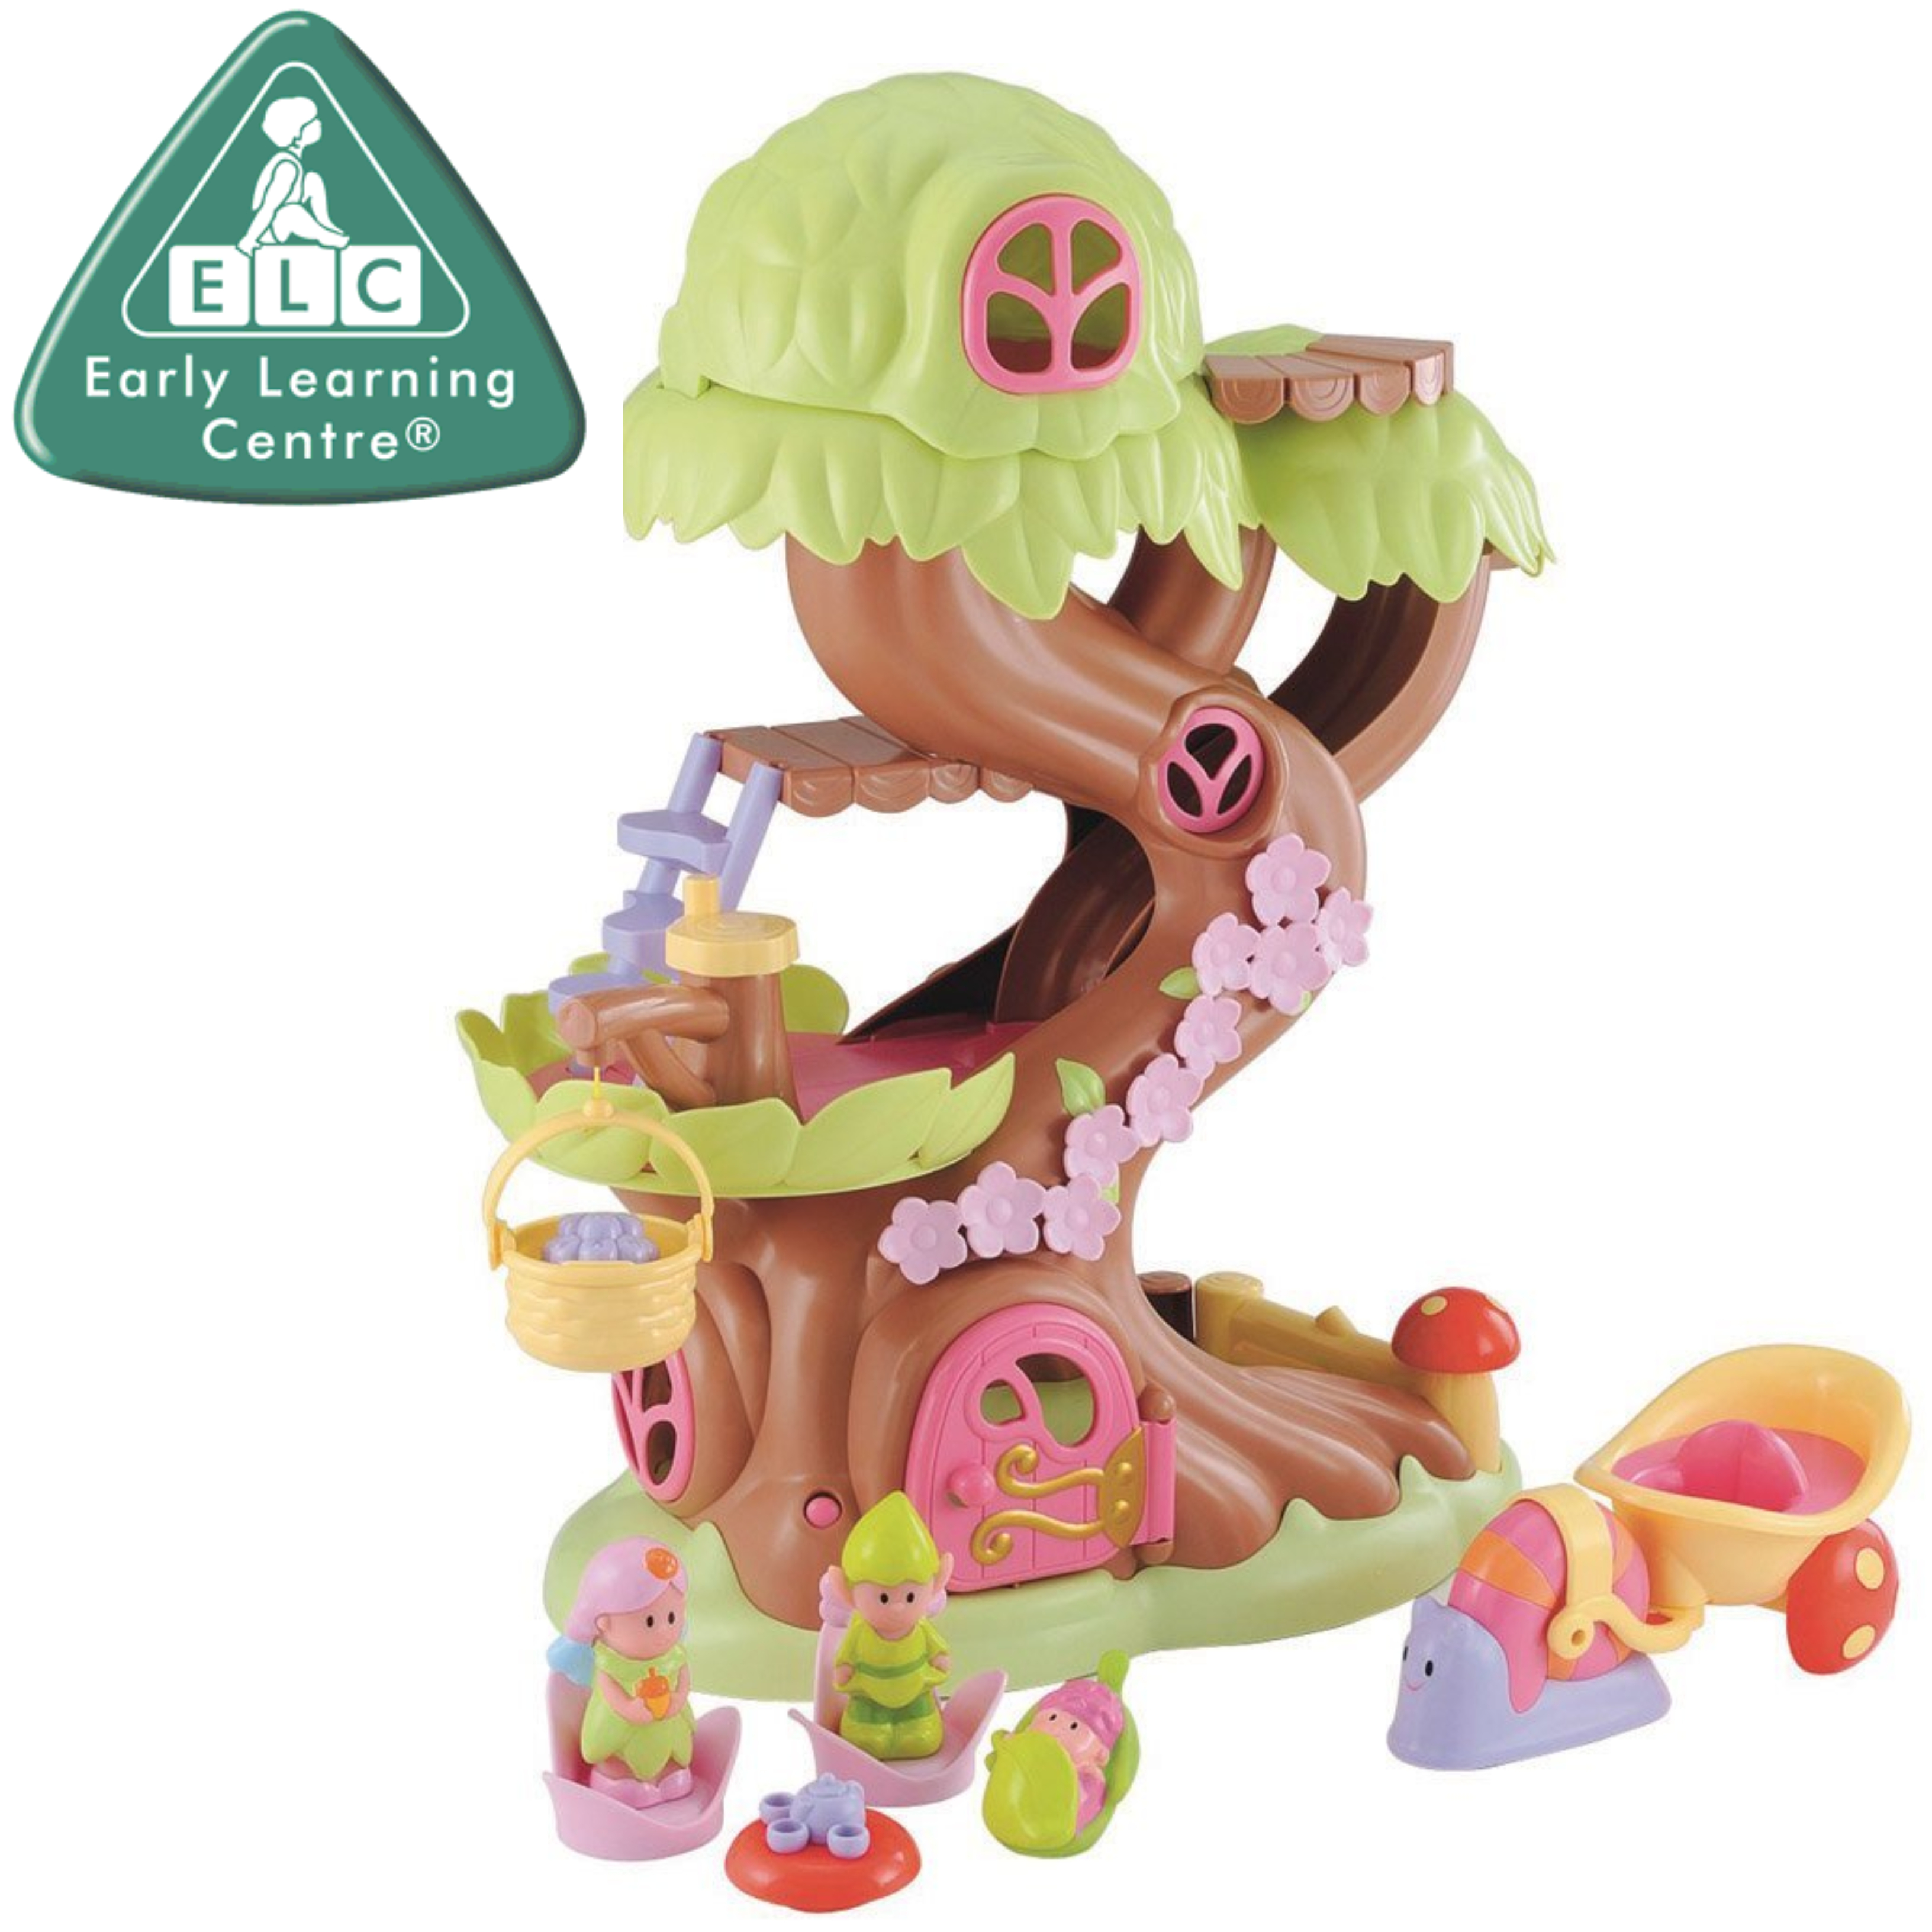 Early Learning Centre Happy Land Treehouse | Baby/ Kid's Learning Activity/ FunToy | +18 Months